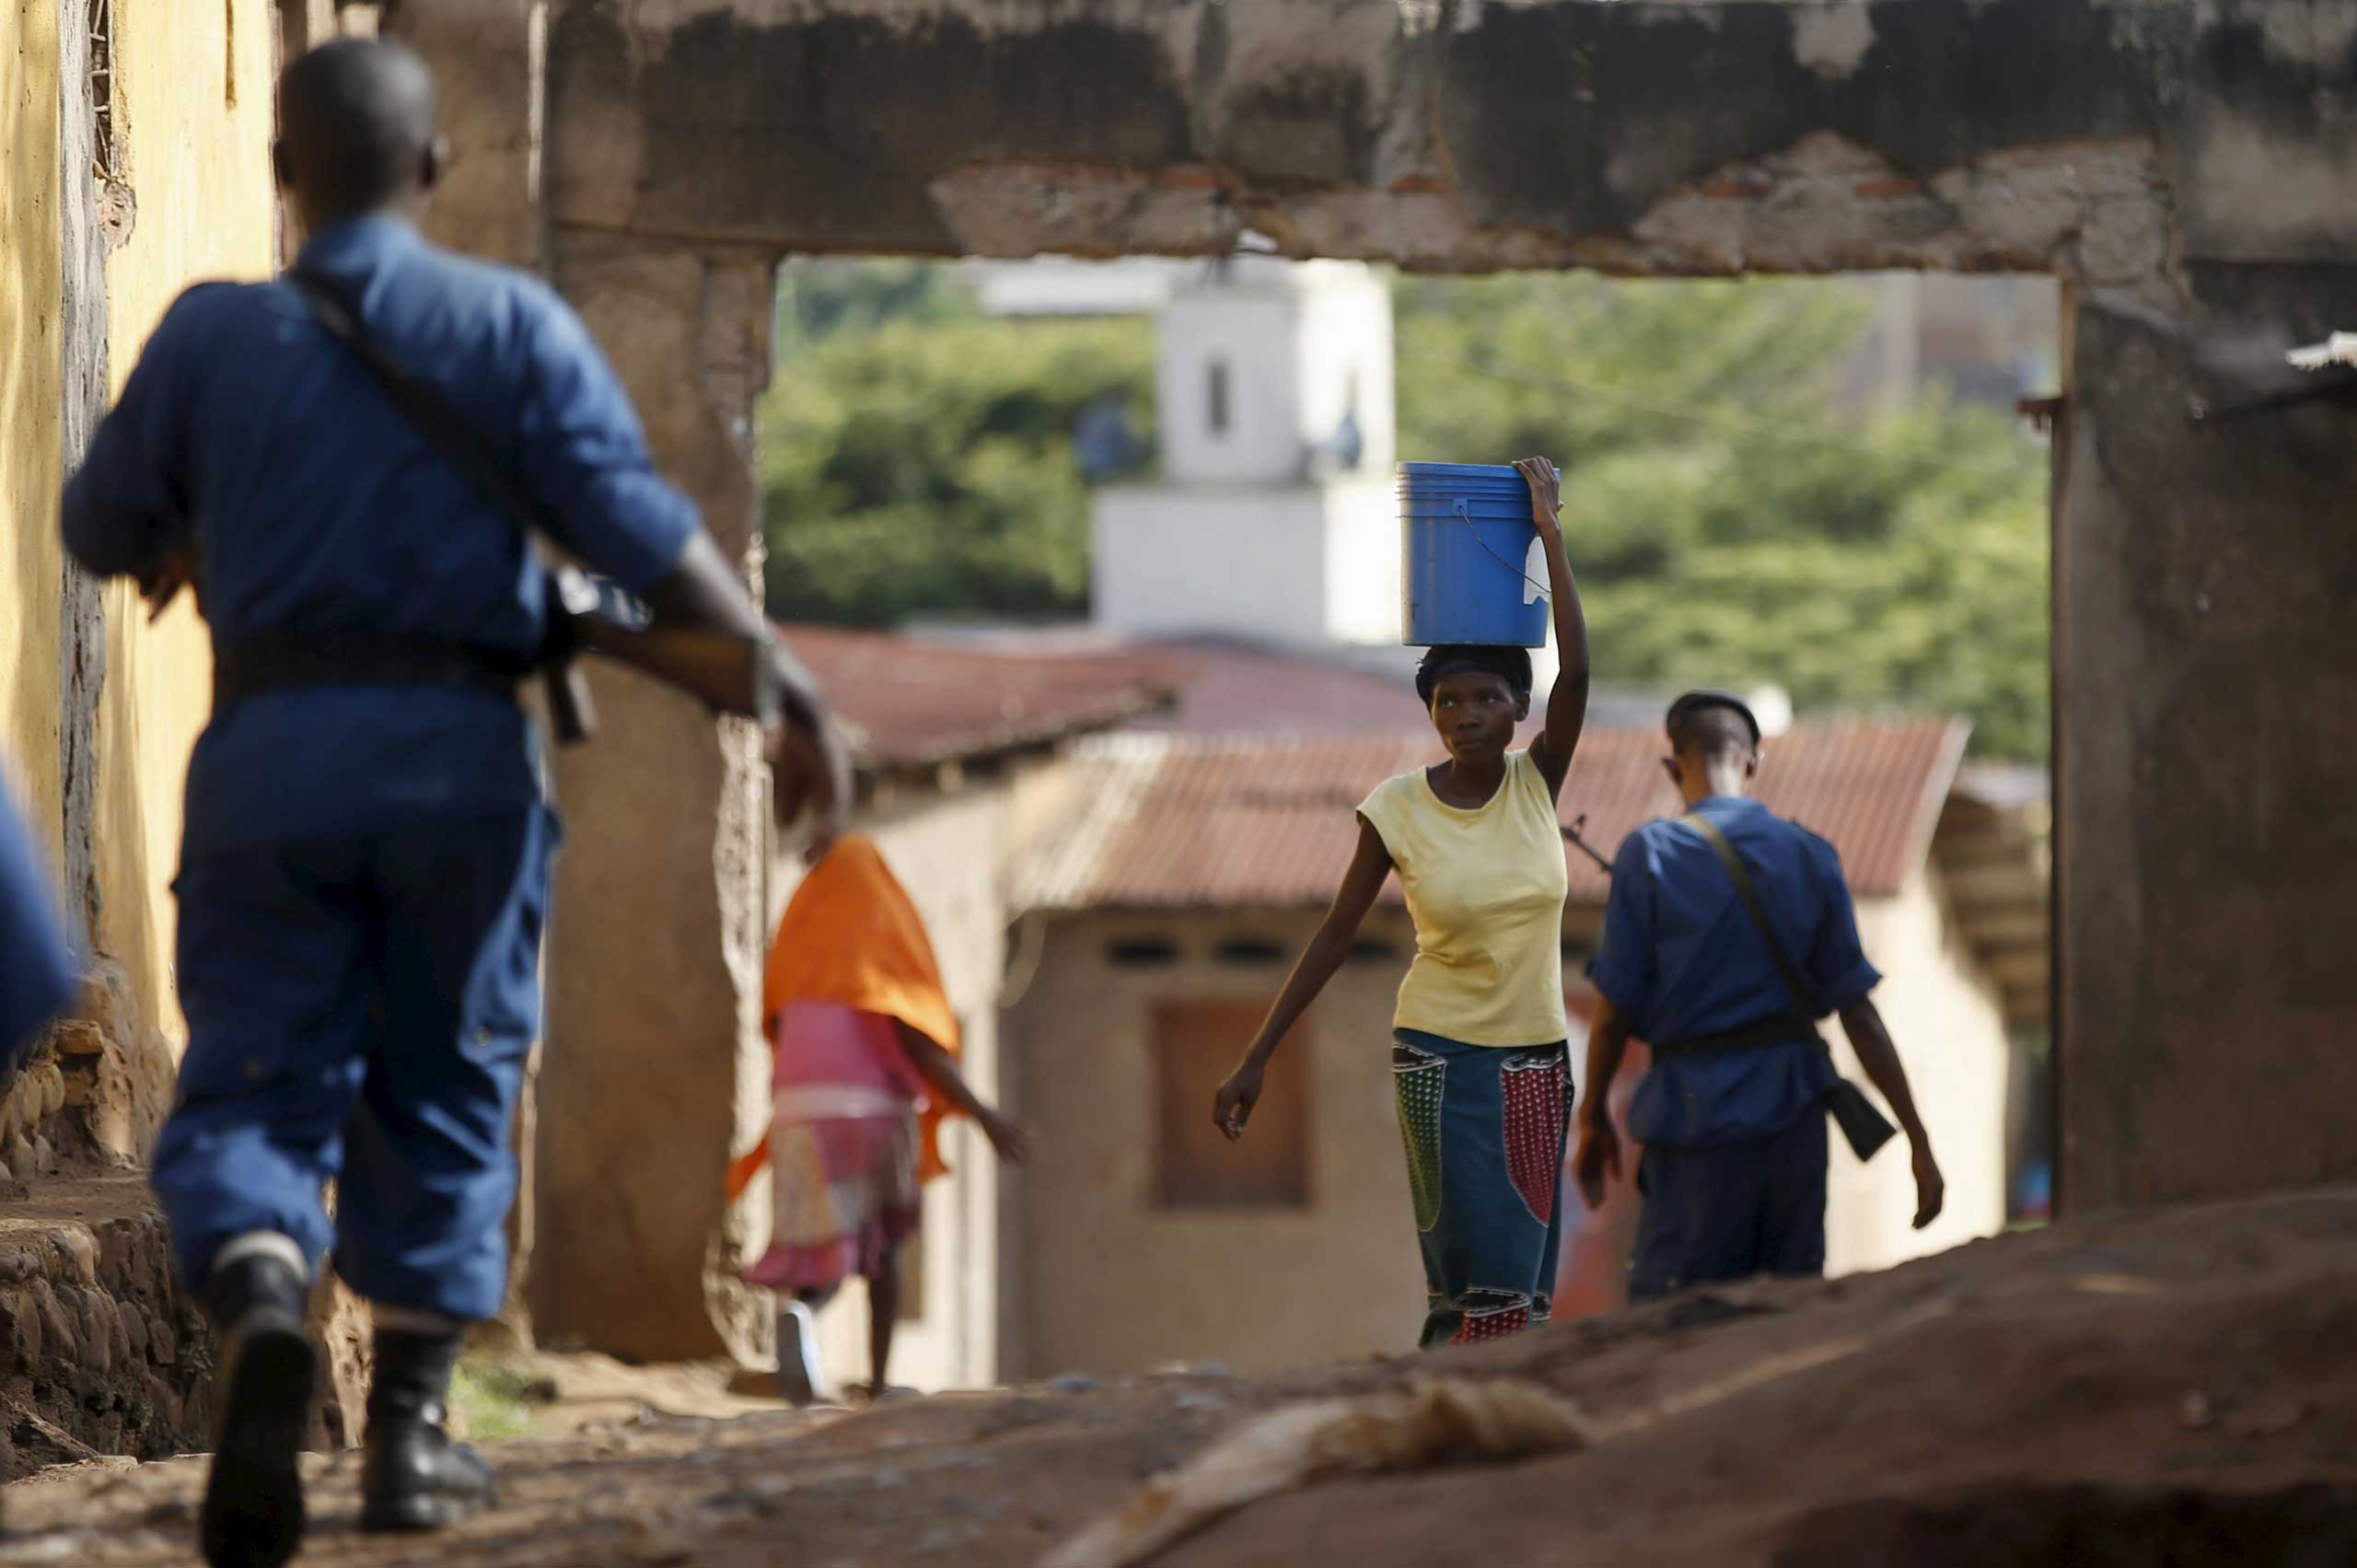 A woman passes by policemen in a street in Bujumbura, Burundi on May 15, 2015.